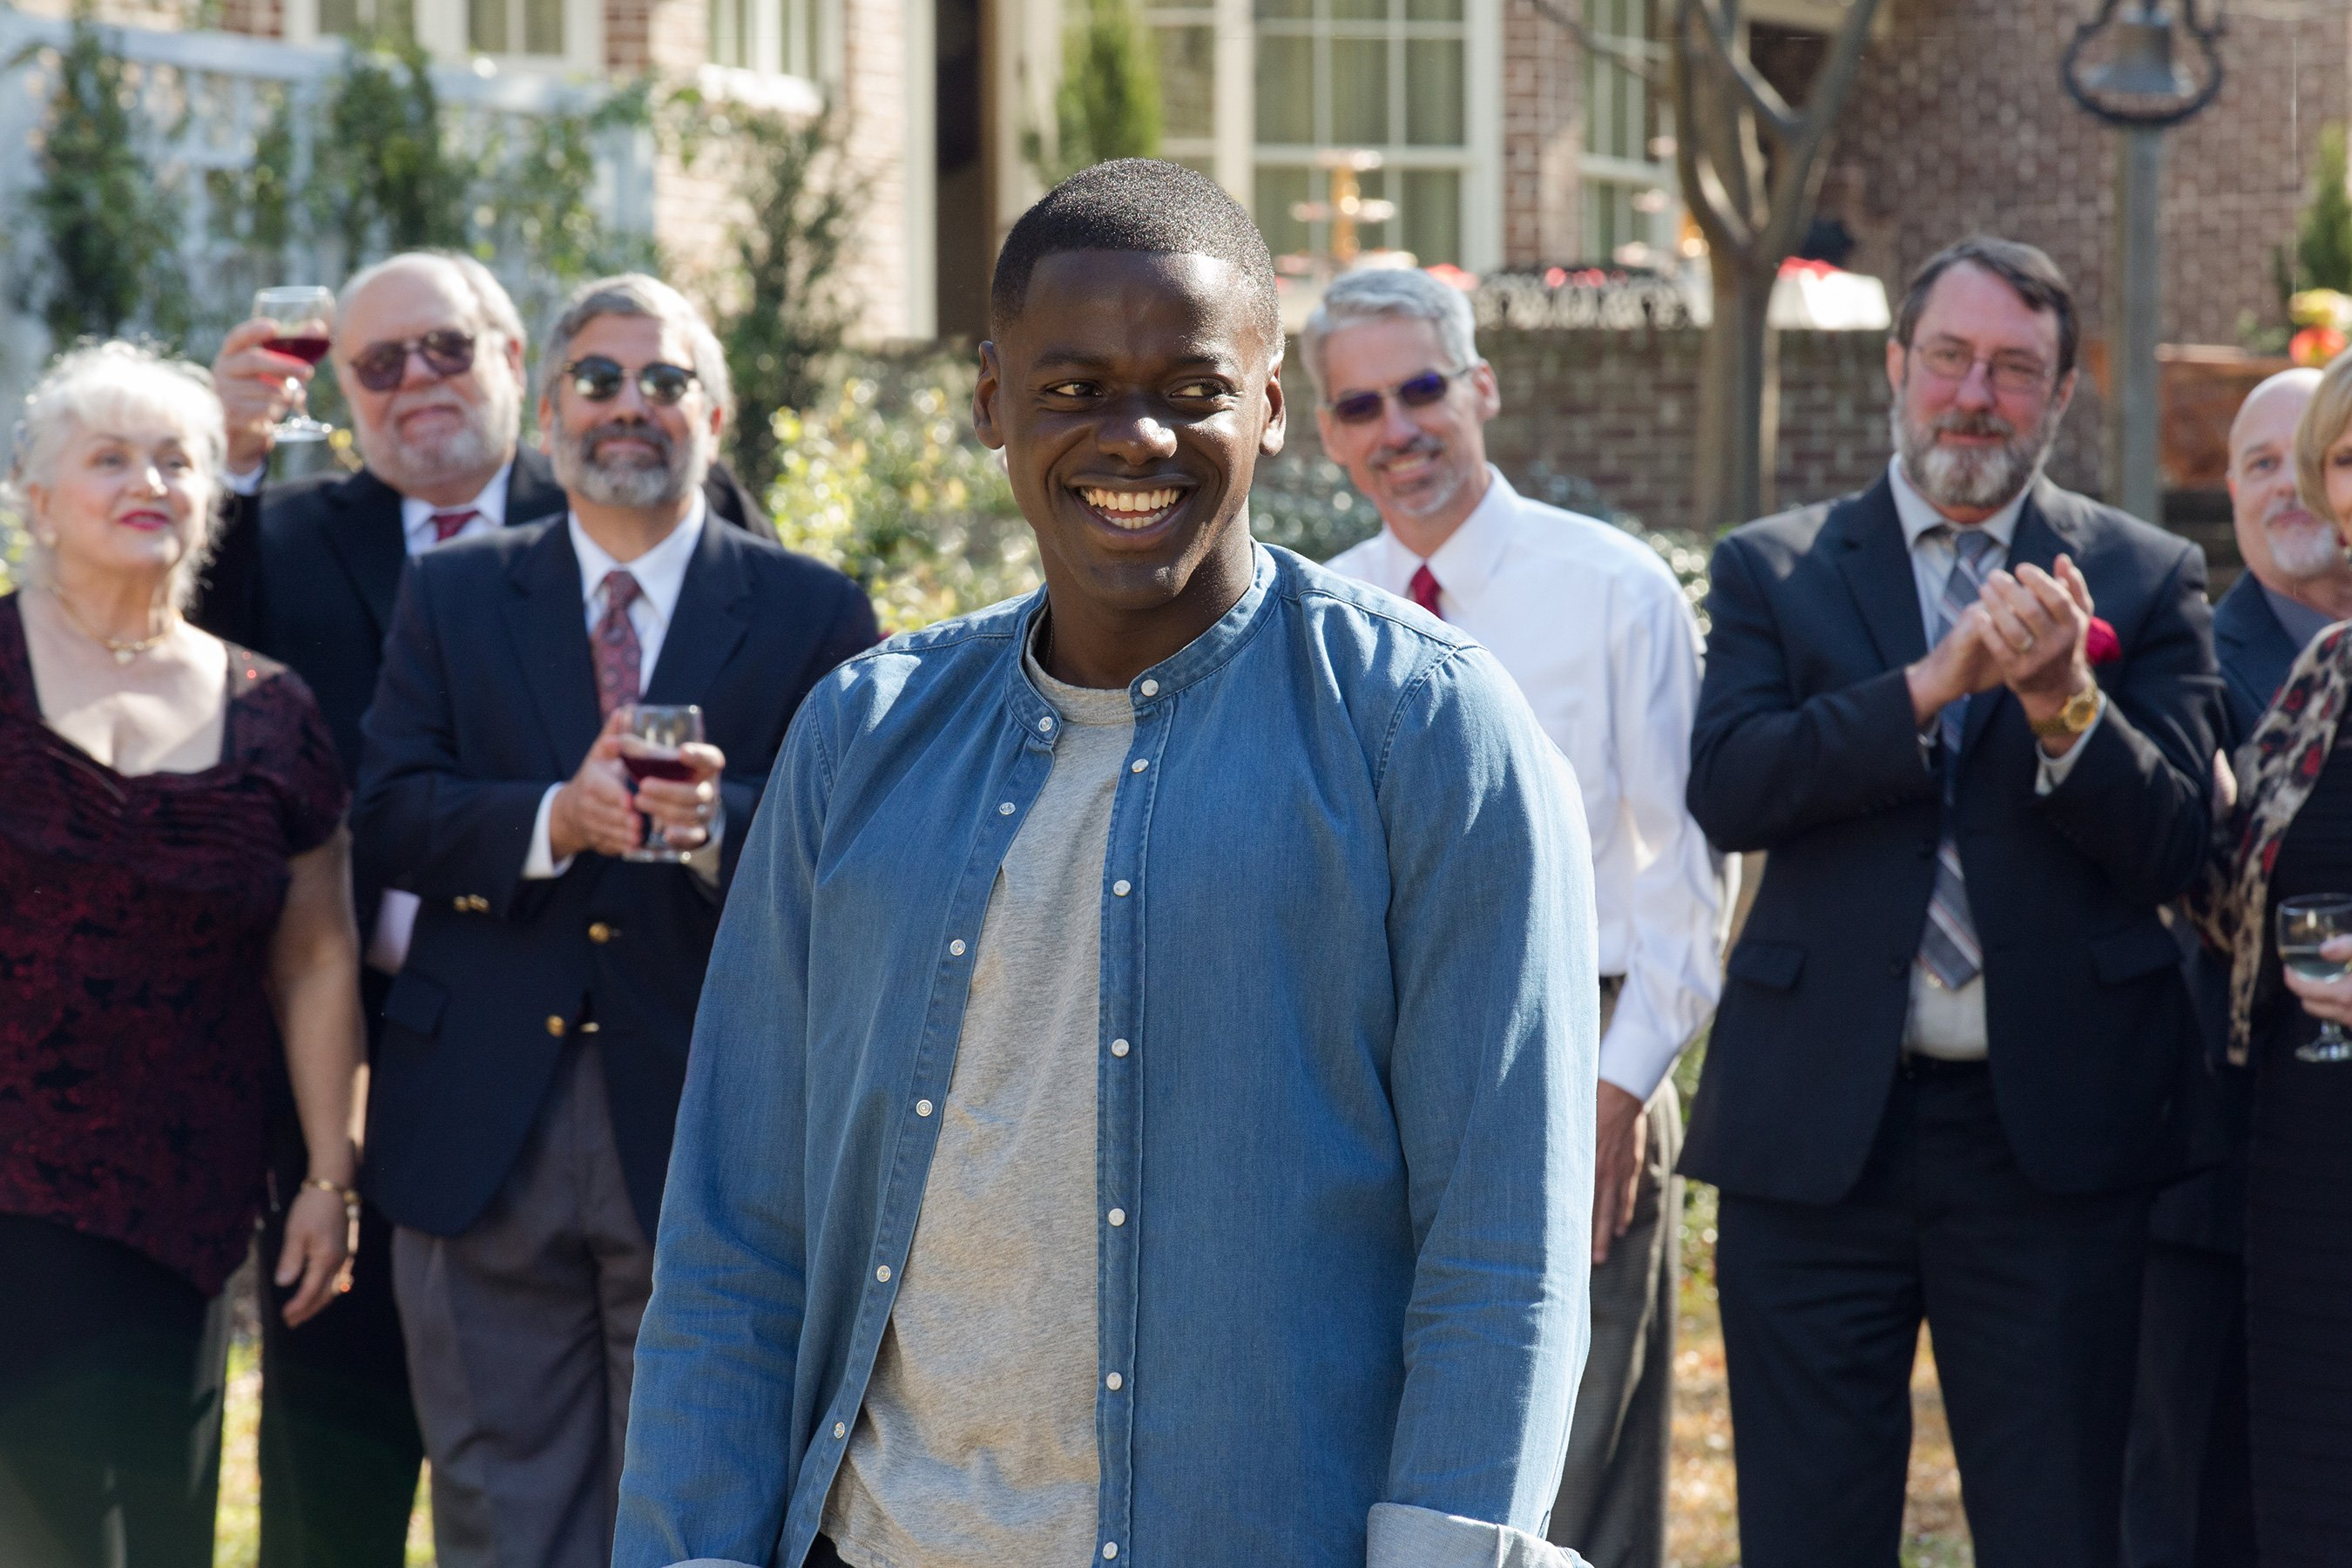 Get Out is returning to theaters for free on President's Day